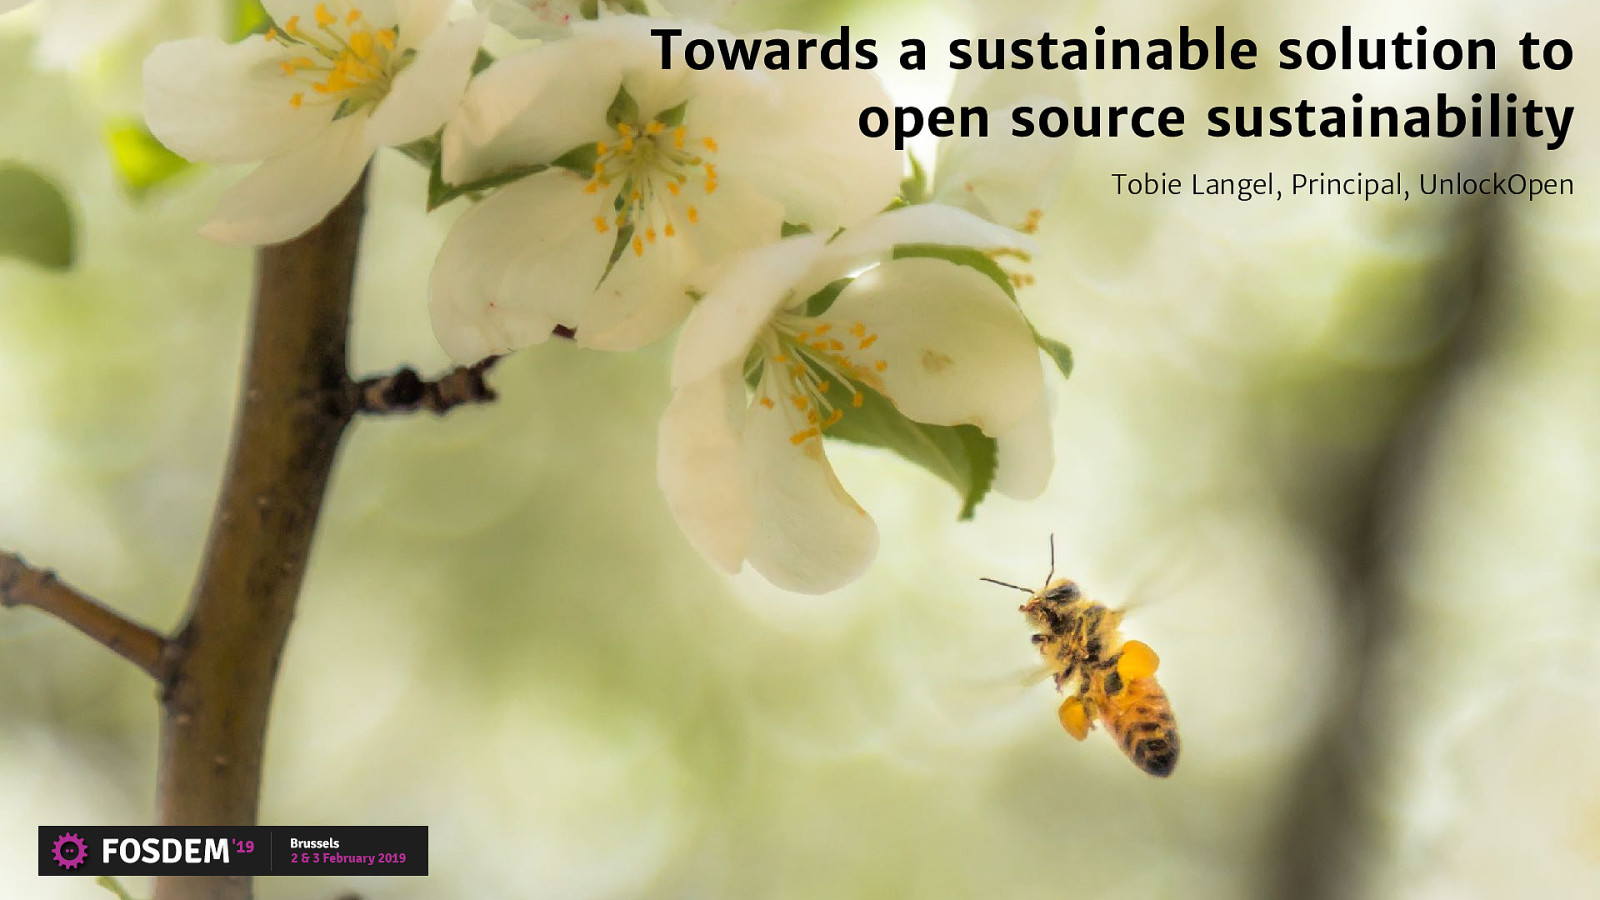 Towards a sustainable solution to open source sustainability by Tobie Langel